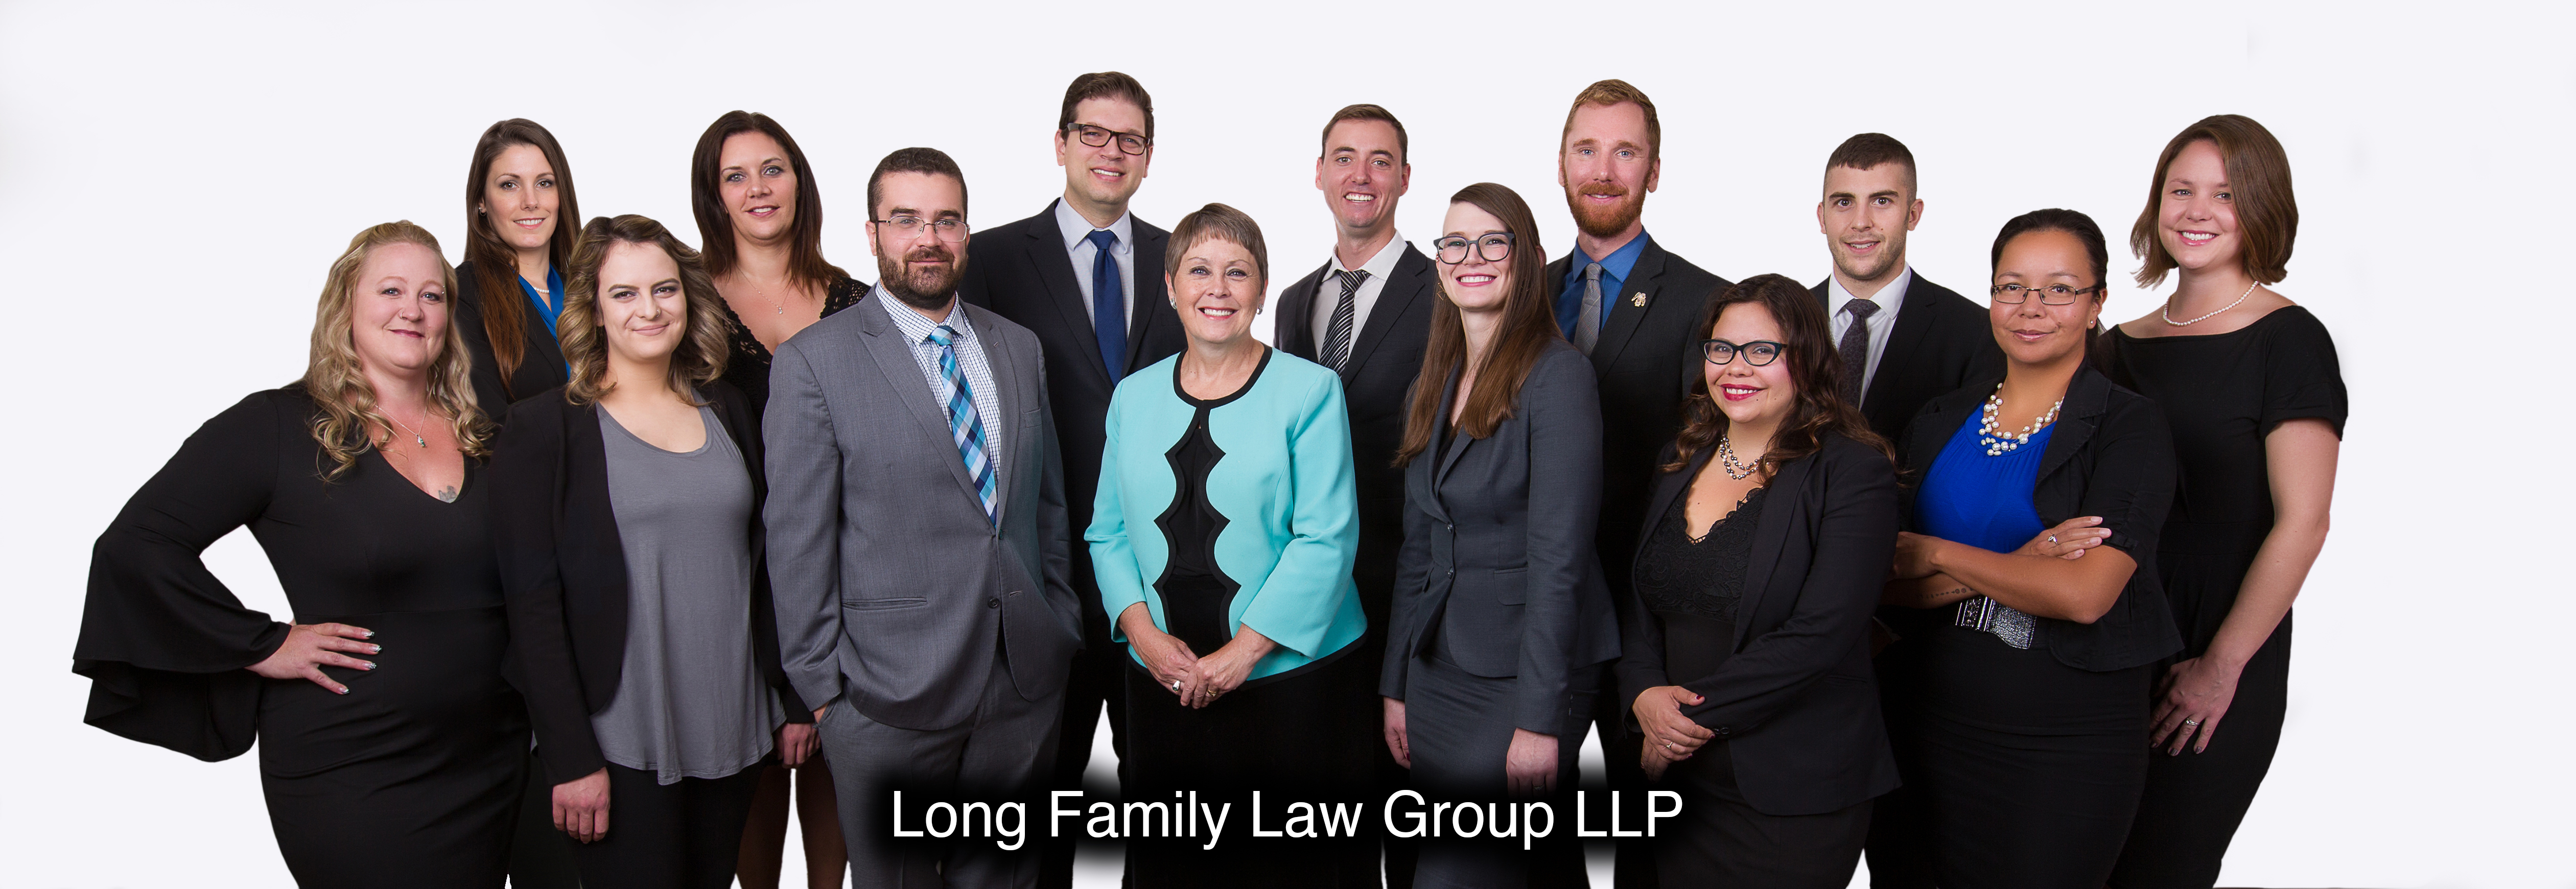 Group of lawyers and assistants in front of a white background